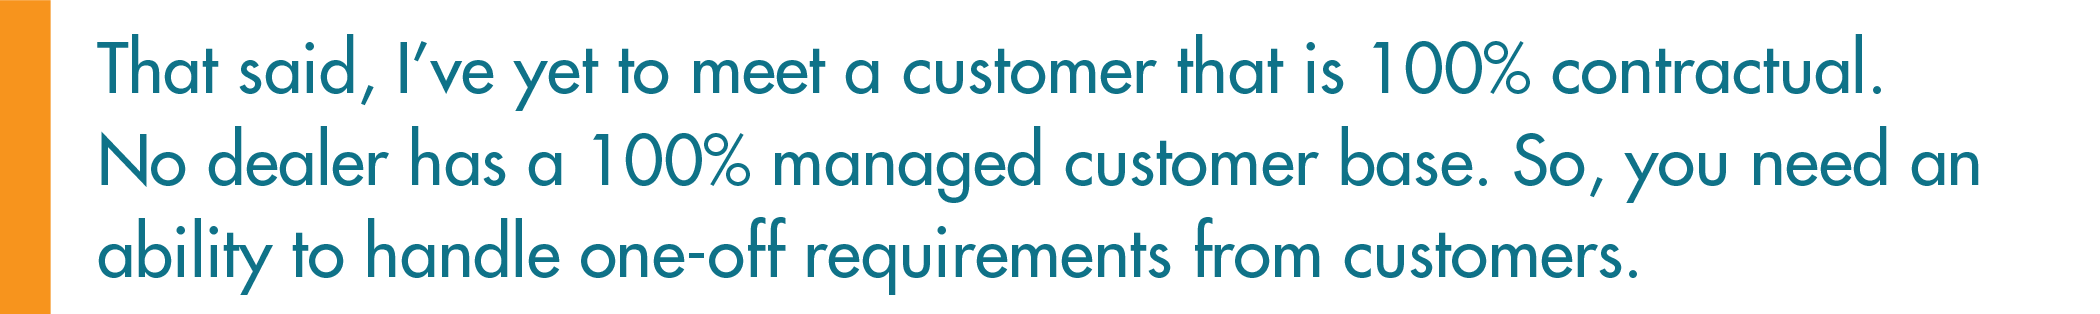 No dealer has a 100% managed customer base. So, you need an ability to handle one-off requirements from customers.